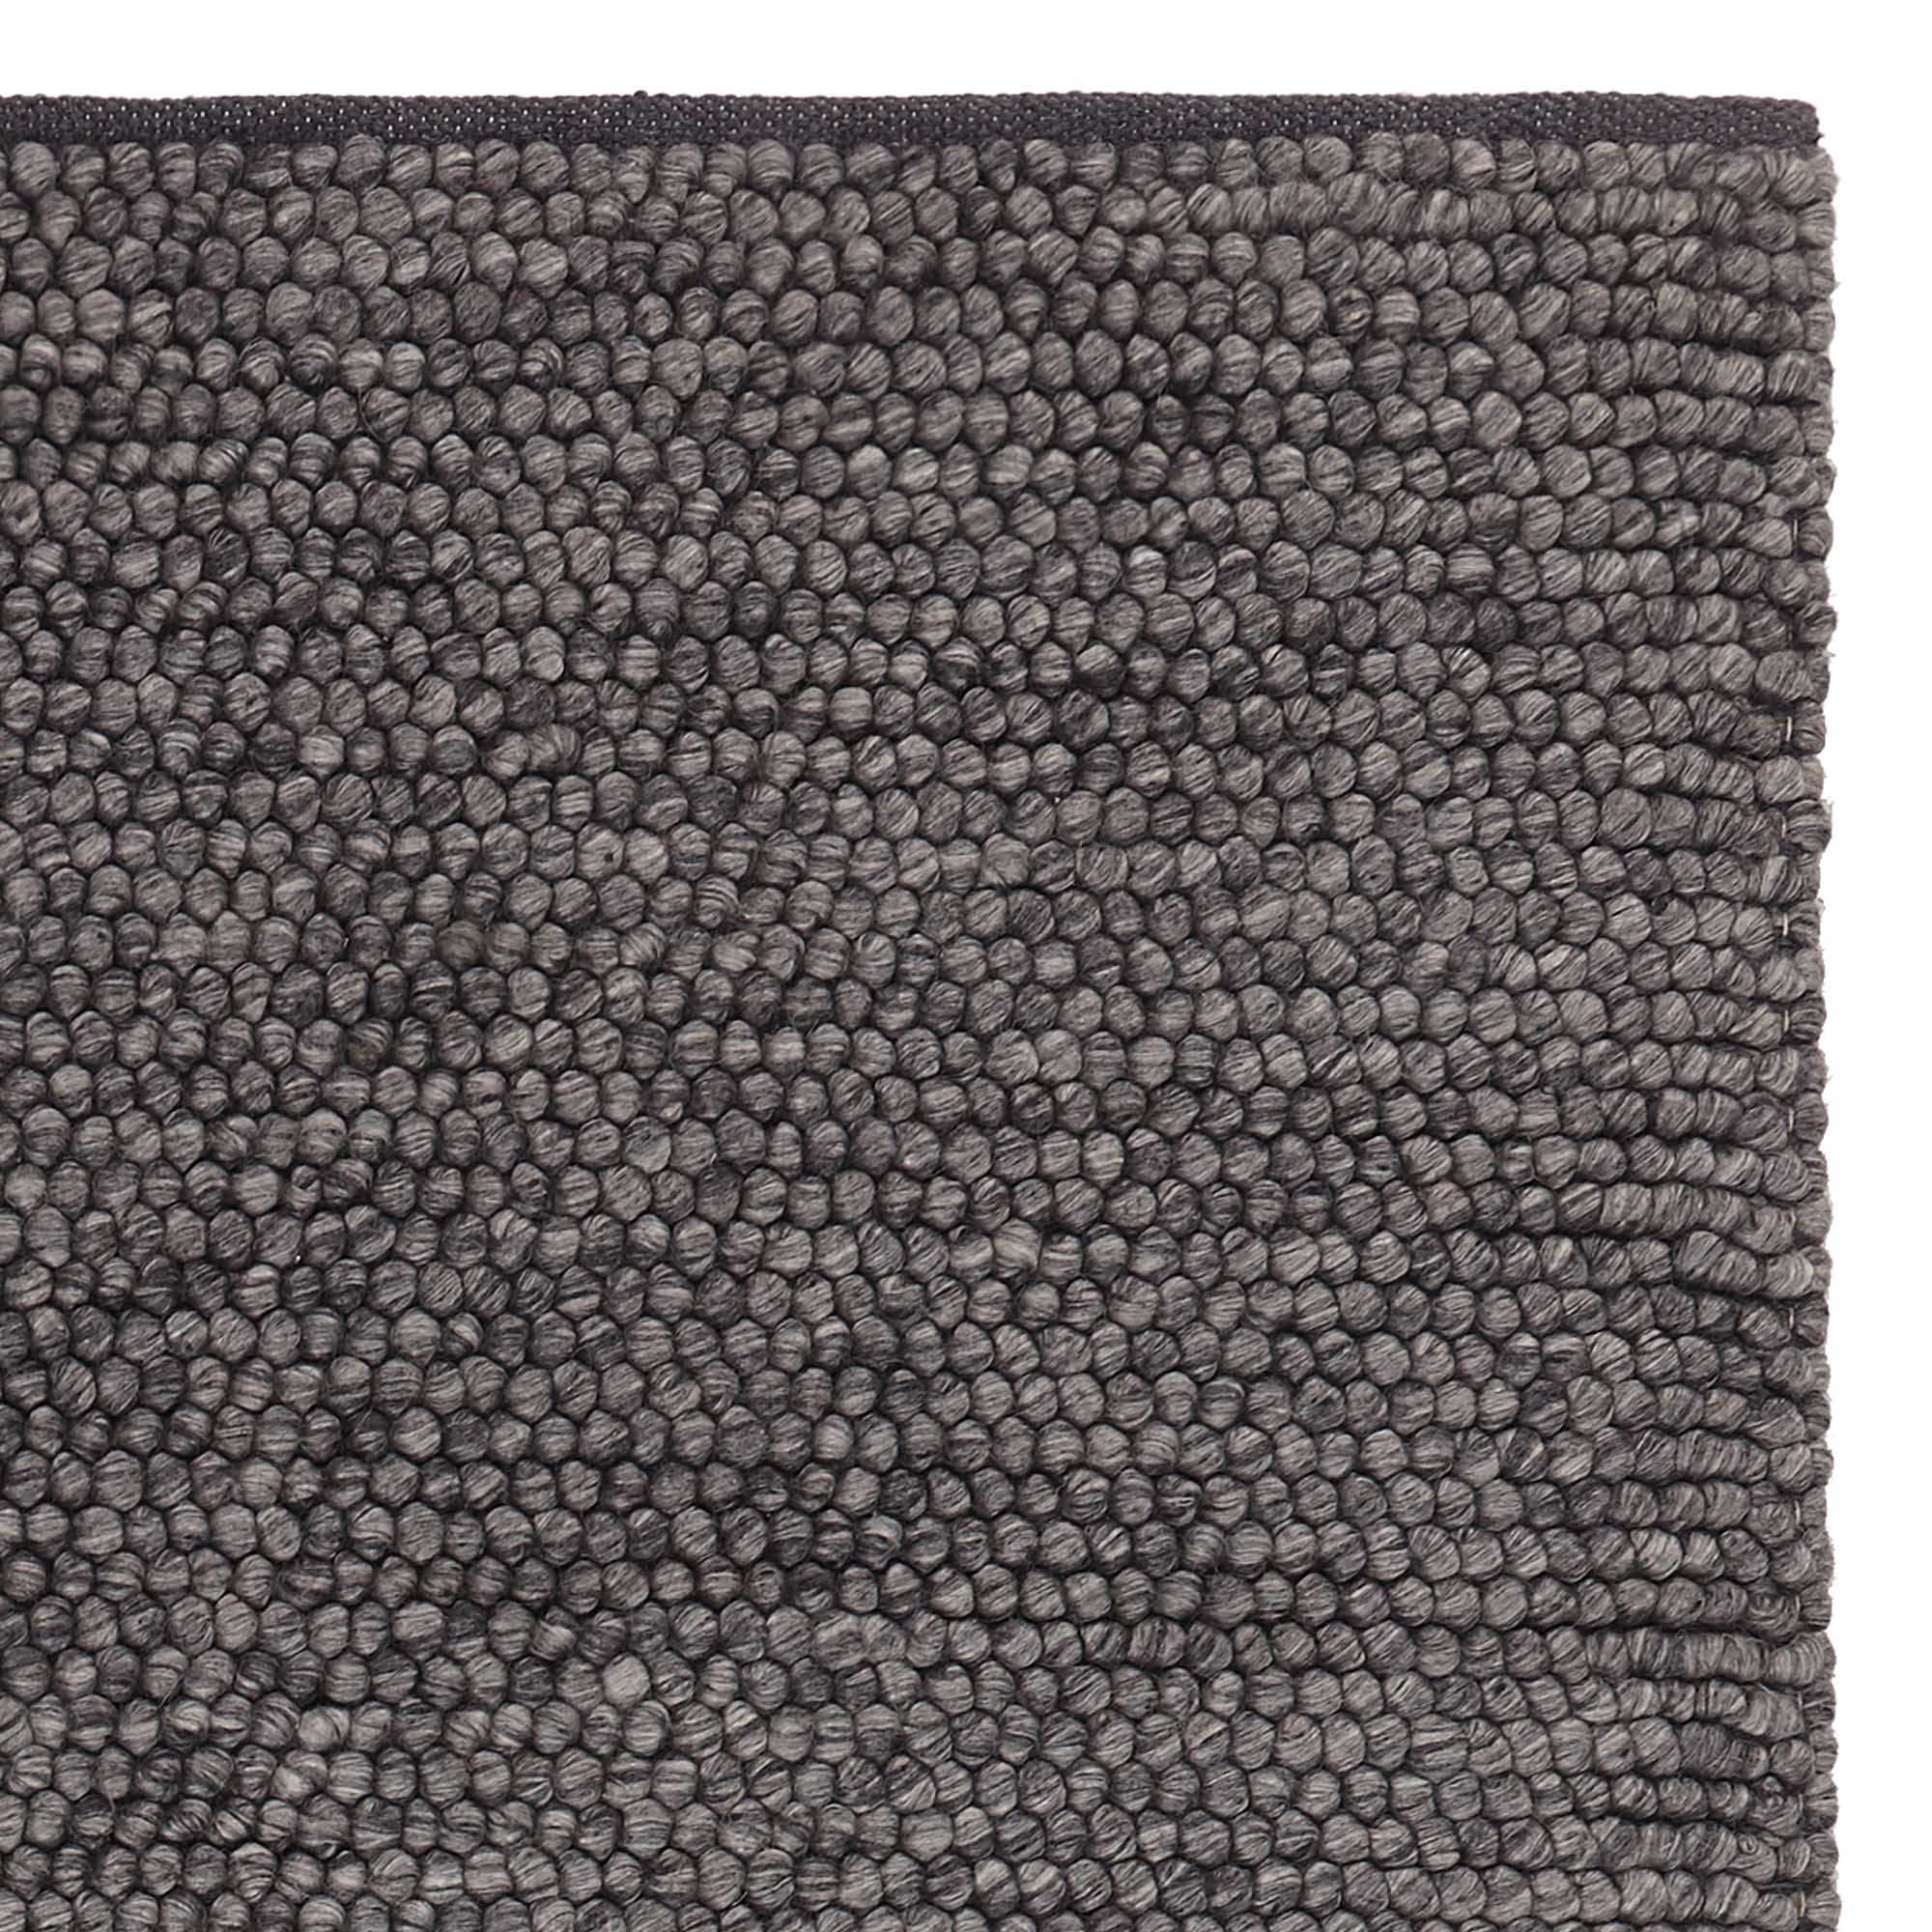 Ravi Wool Rug Charcoal Melange 70 New Wool Amp 30